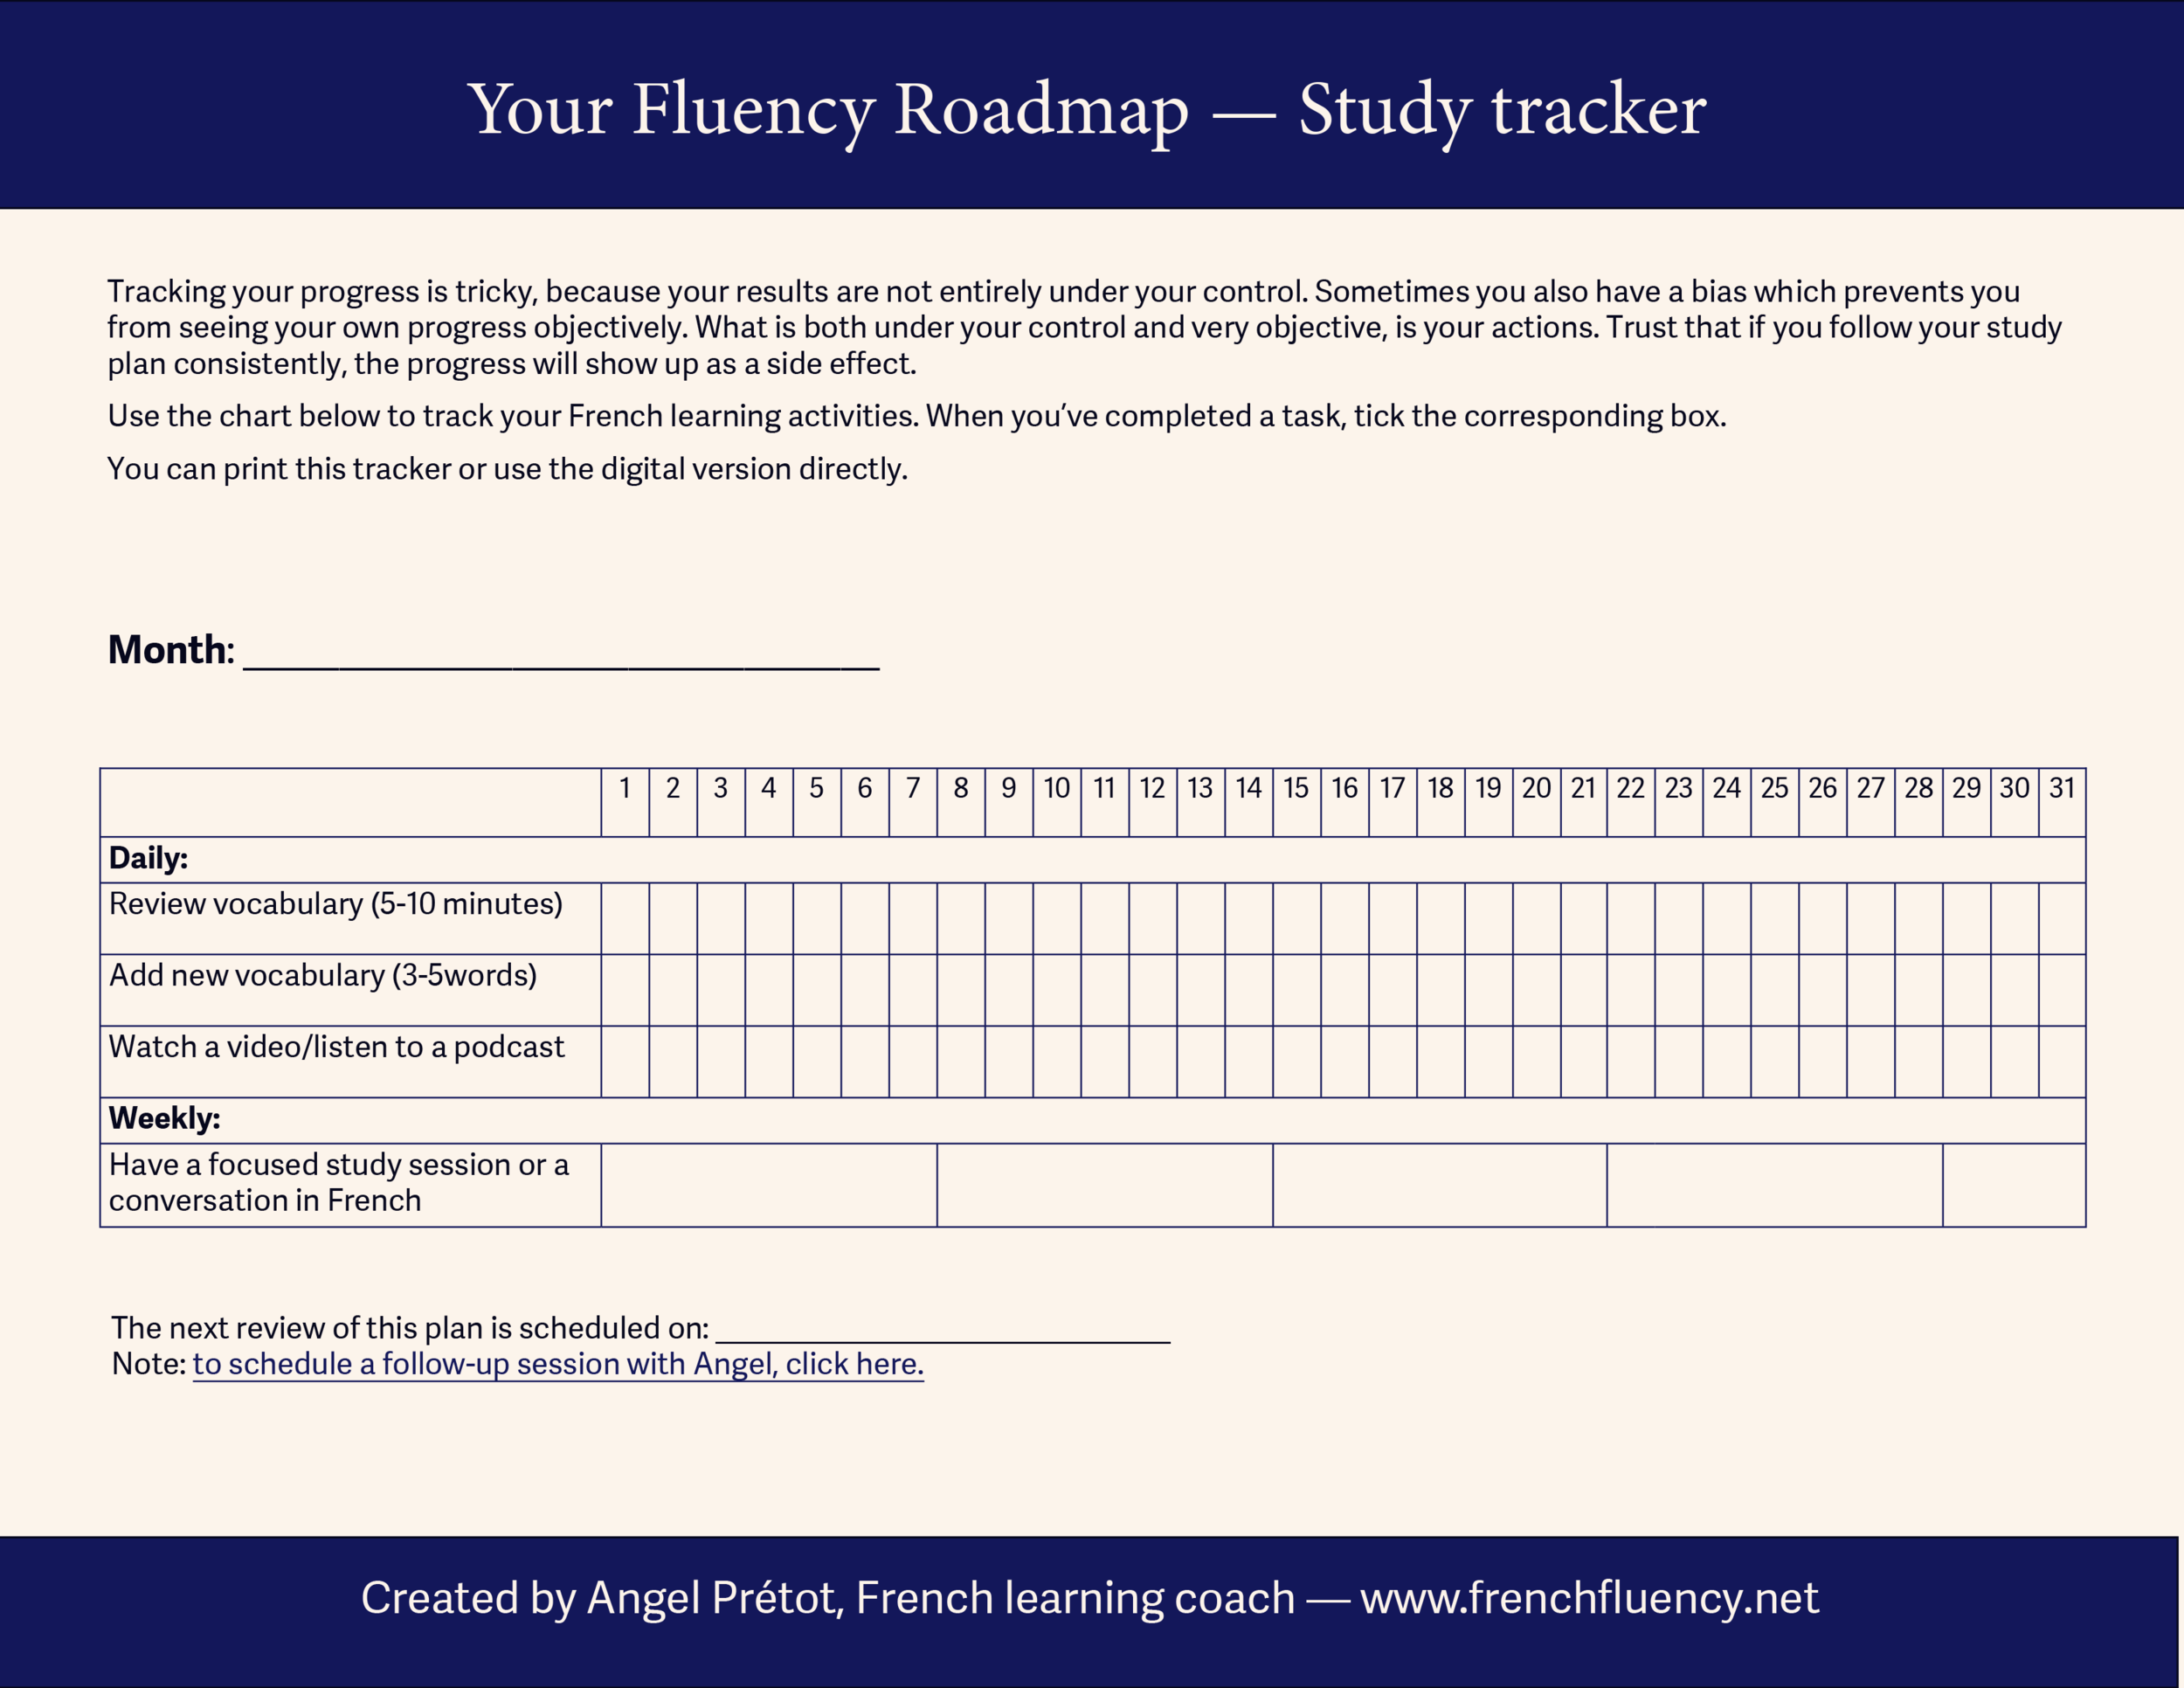 learn French fluency study tracker.png